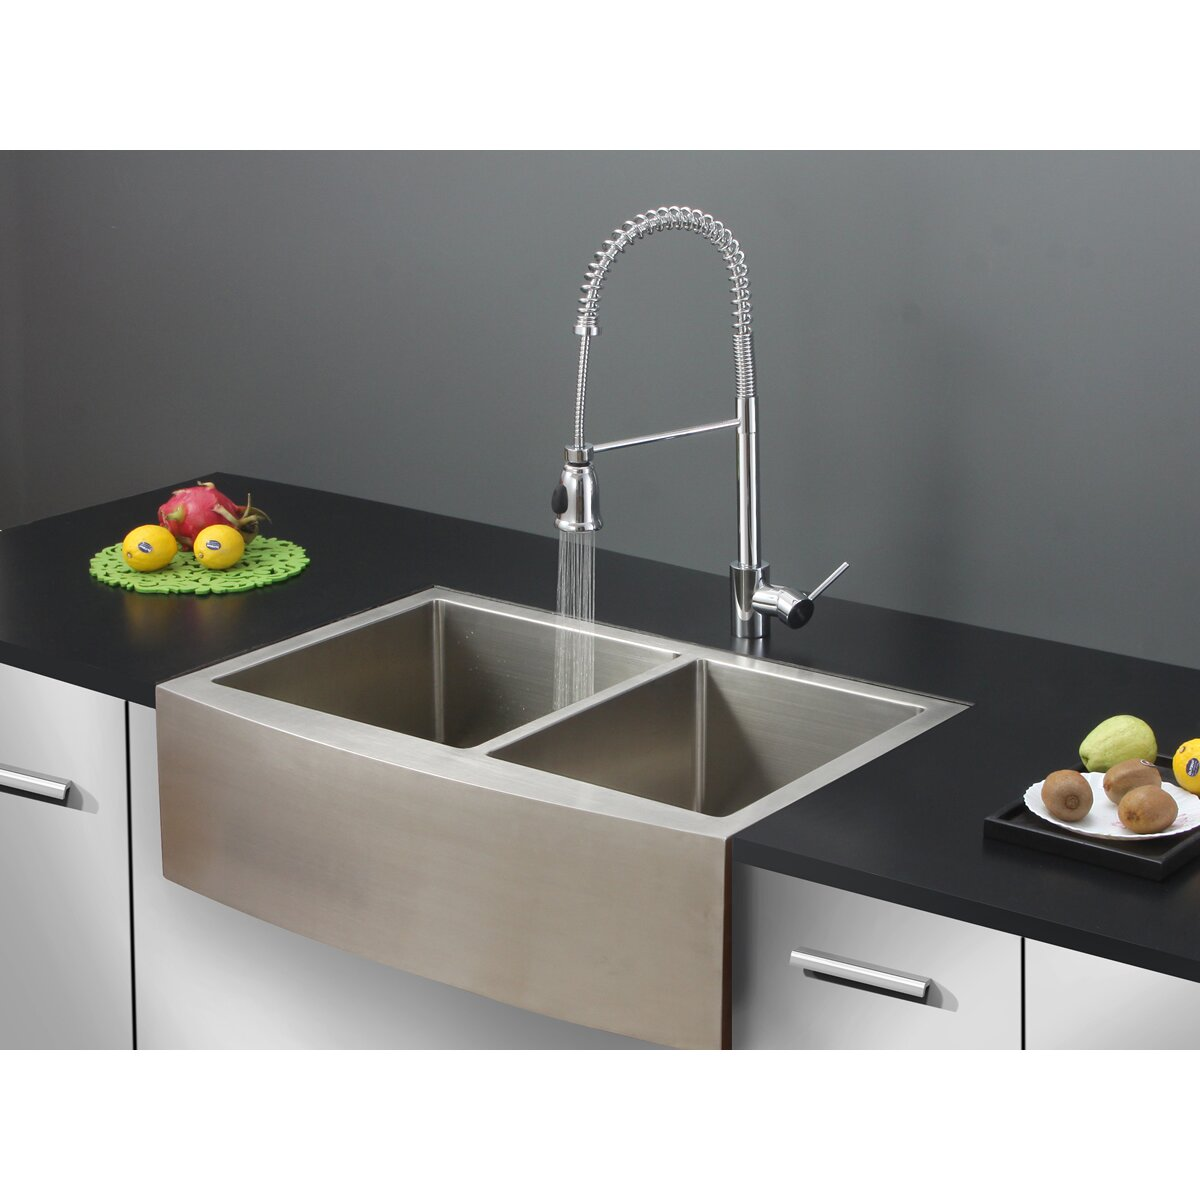 22 x 33 kitchen sink ruvati 33 quot x 22 quot kitchen sink with faucet amp reviews wayfair 7298